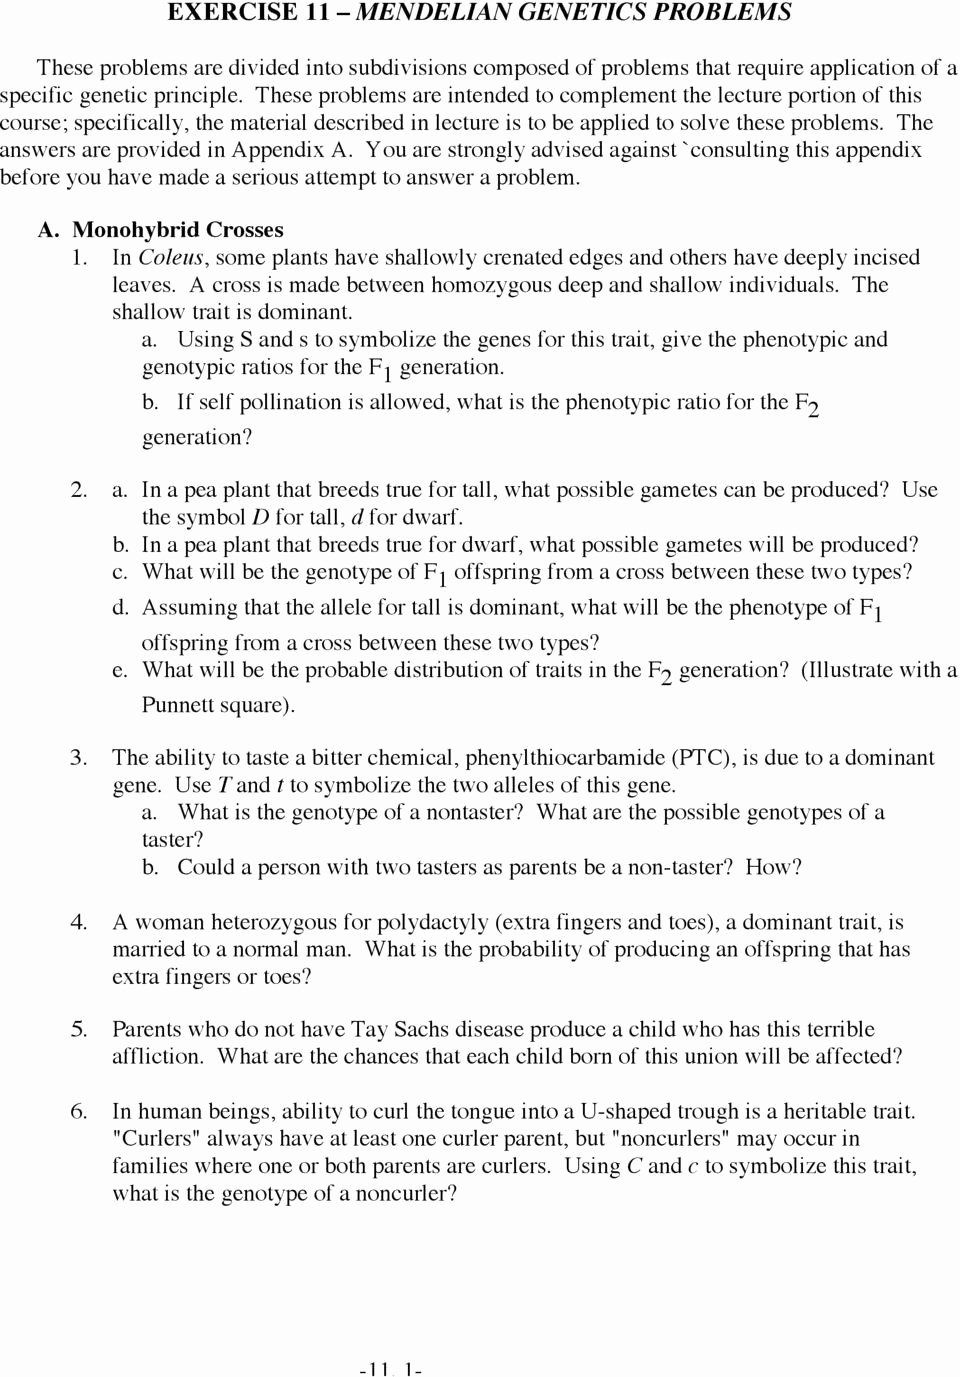 Mendelian Genetics Worksheet Answer Key Fresh Mendelian Genetics Worksheet Answers Fresh Worksheet Punnett